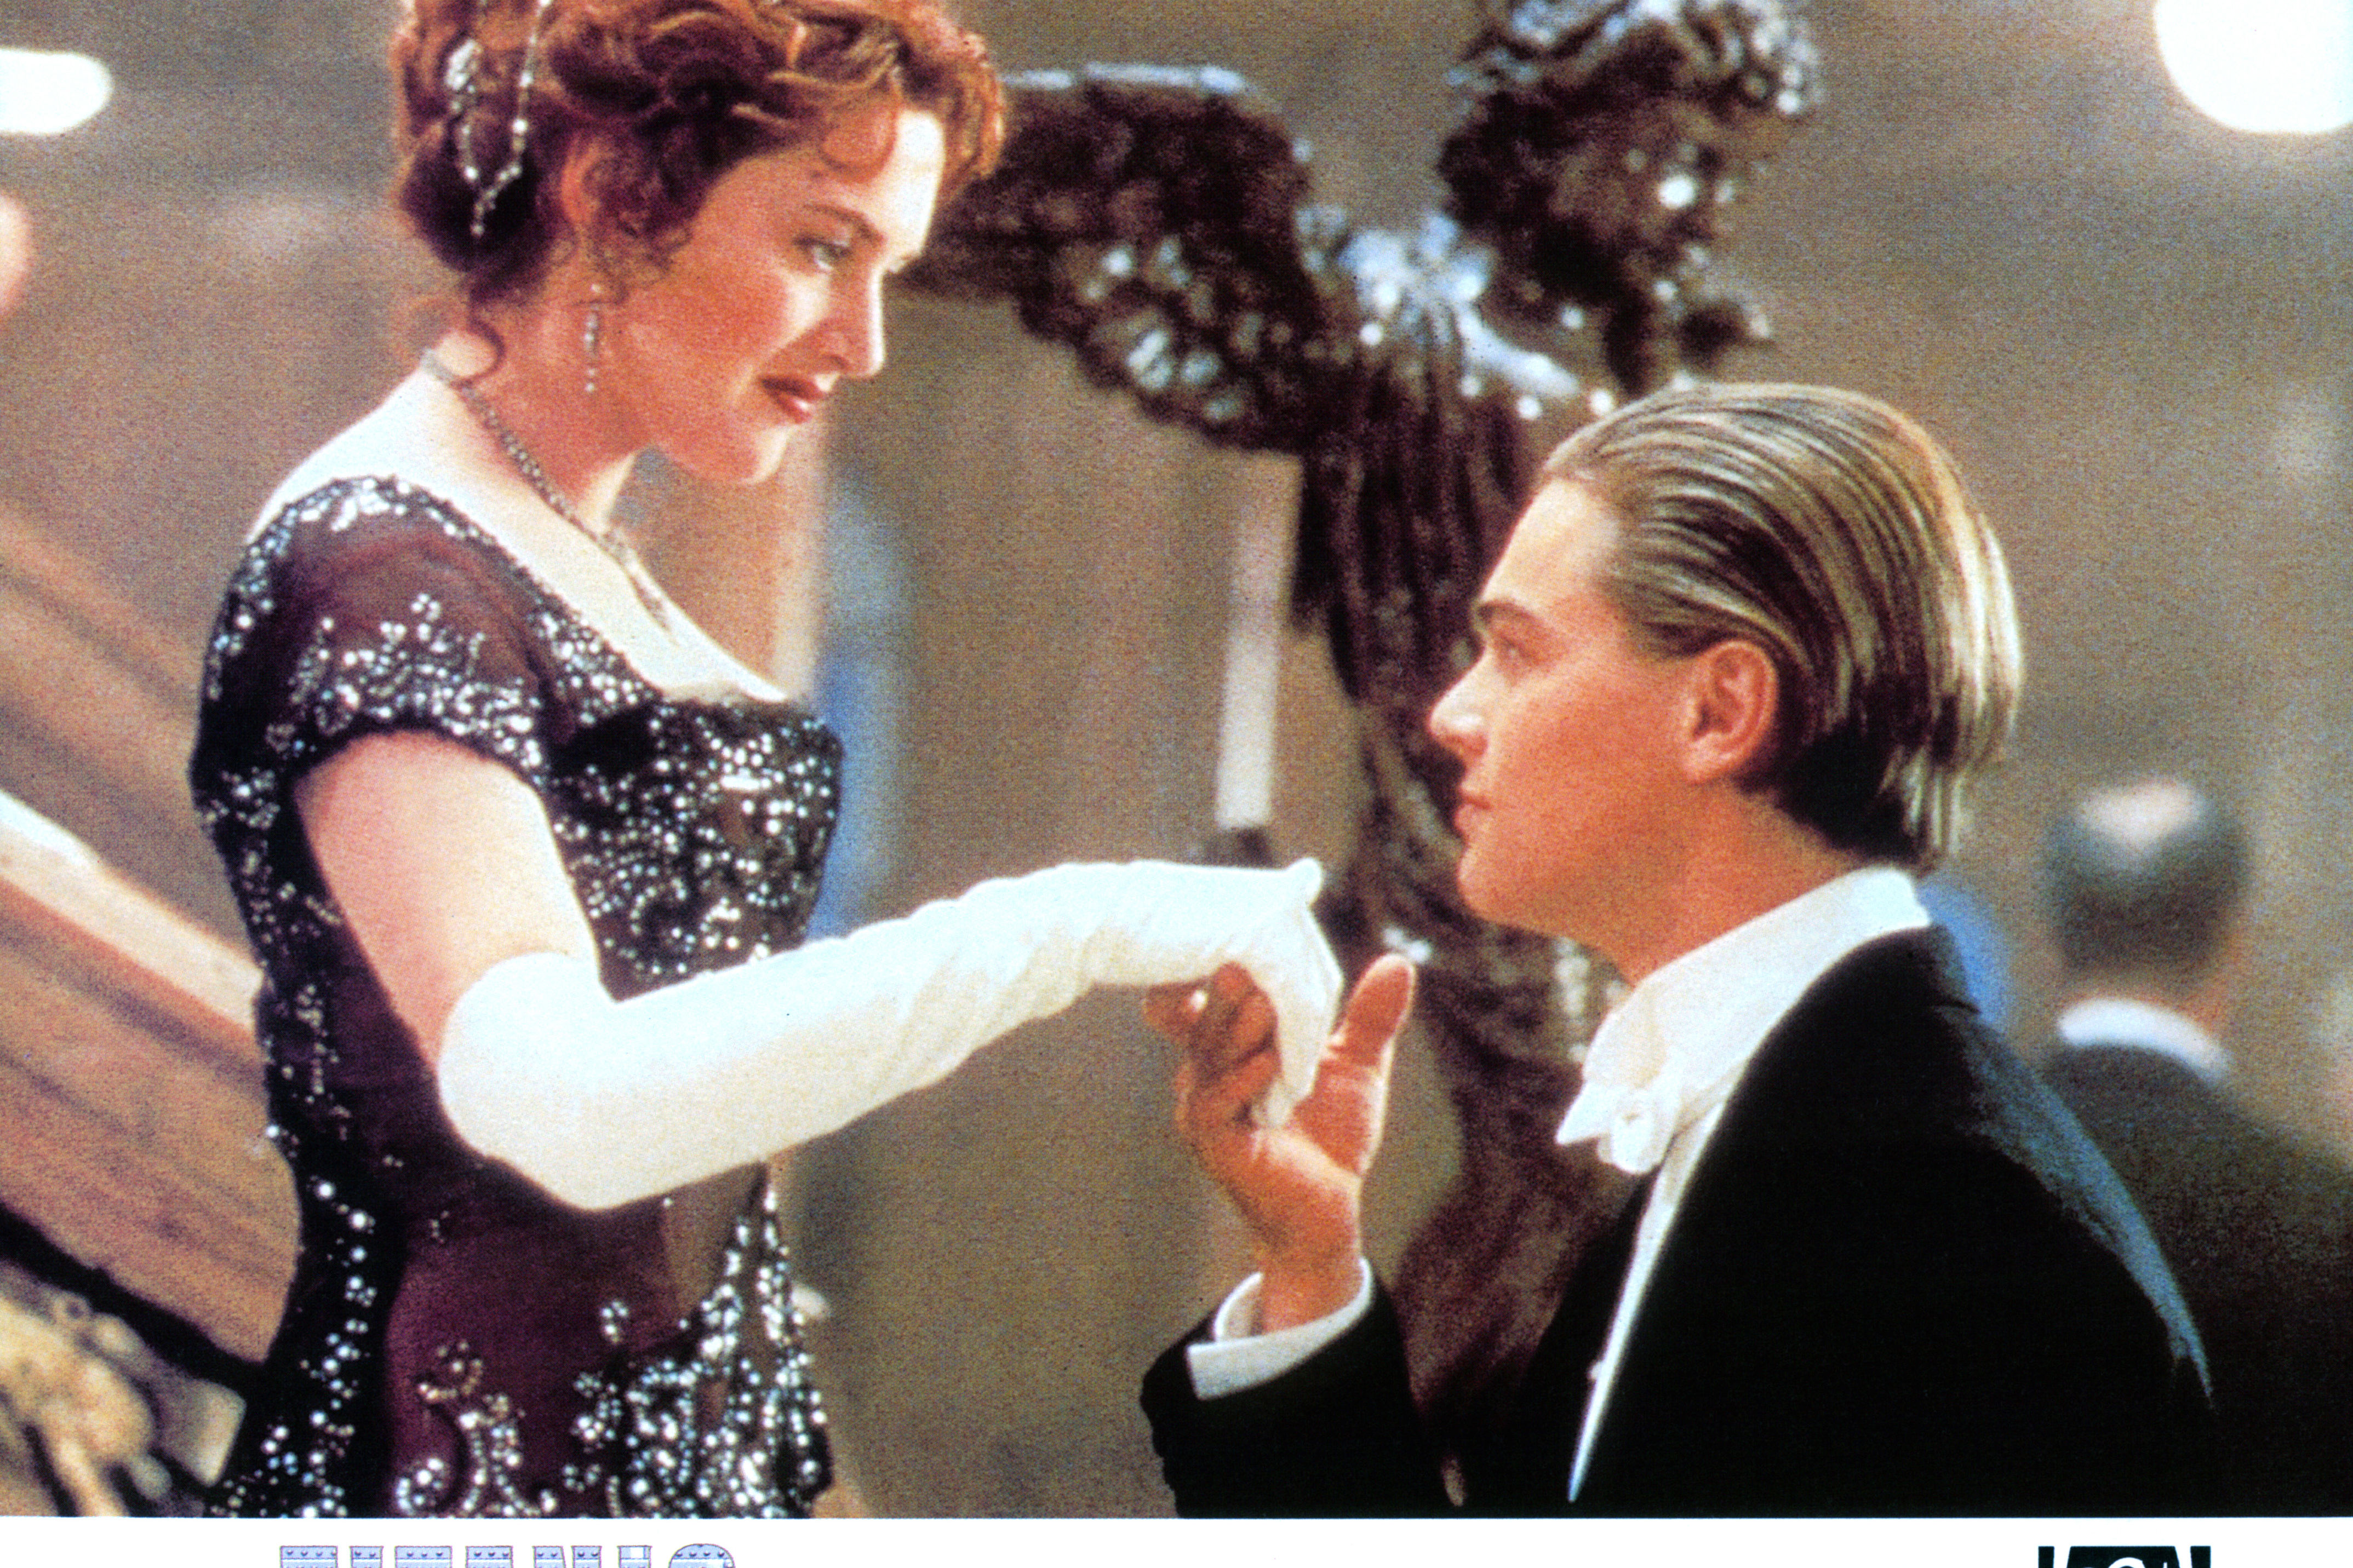 Titanicto Return to Theaters for 20th Anniversary